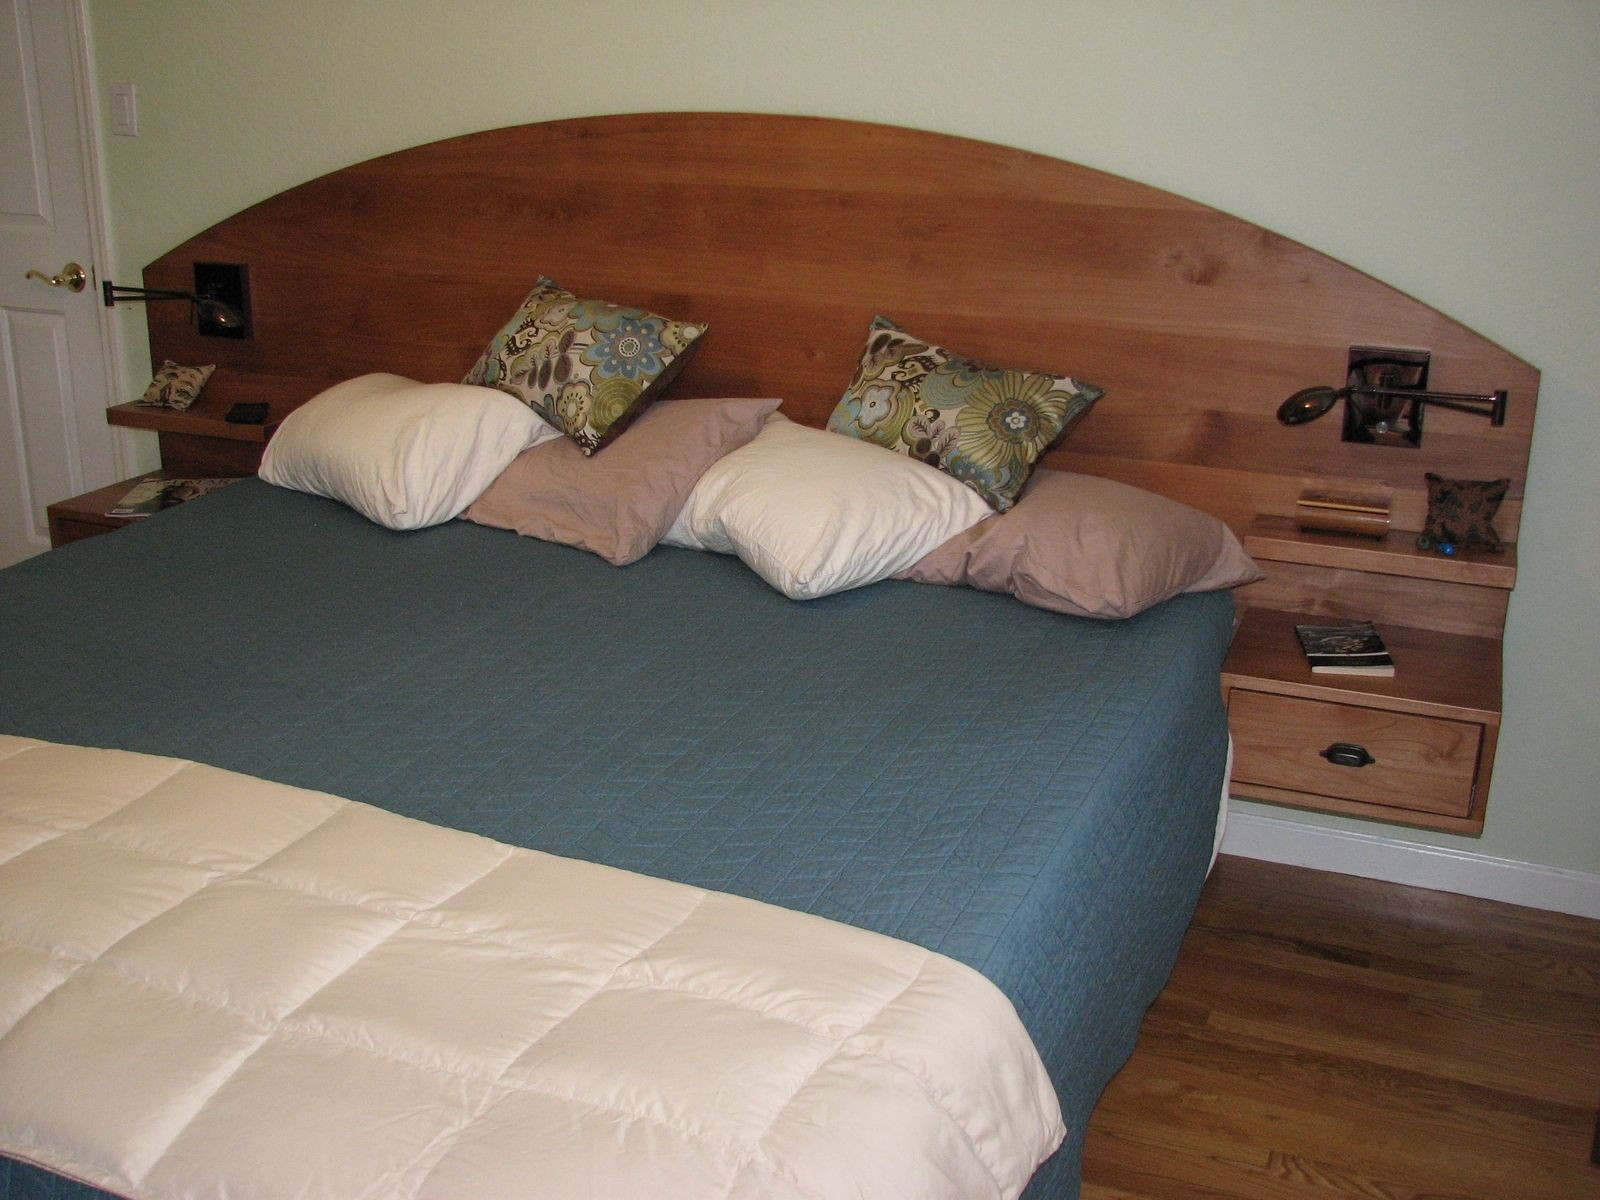 Custom King Size Pedestal Bed With Drawers